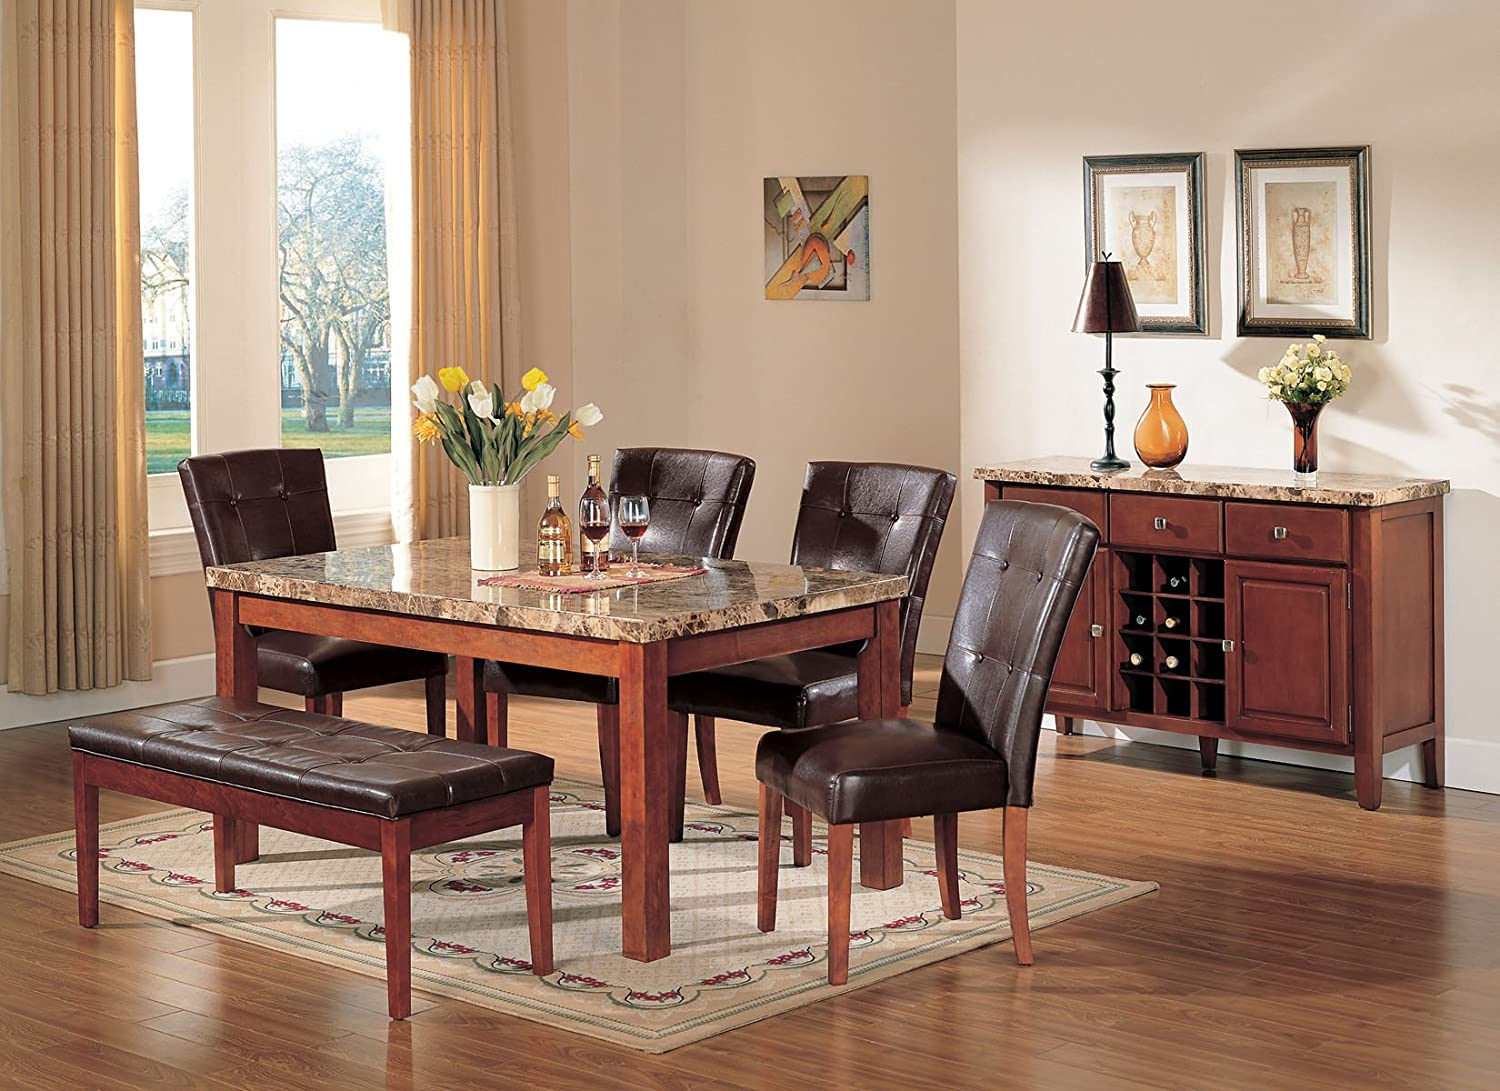 Amazon.com - ACME Bologna Brown Marble Top Dining Table, Cherry ...